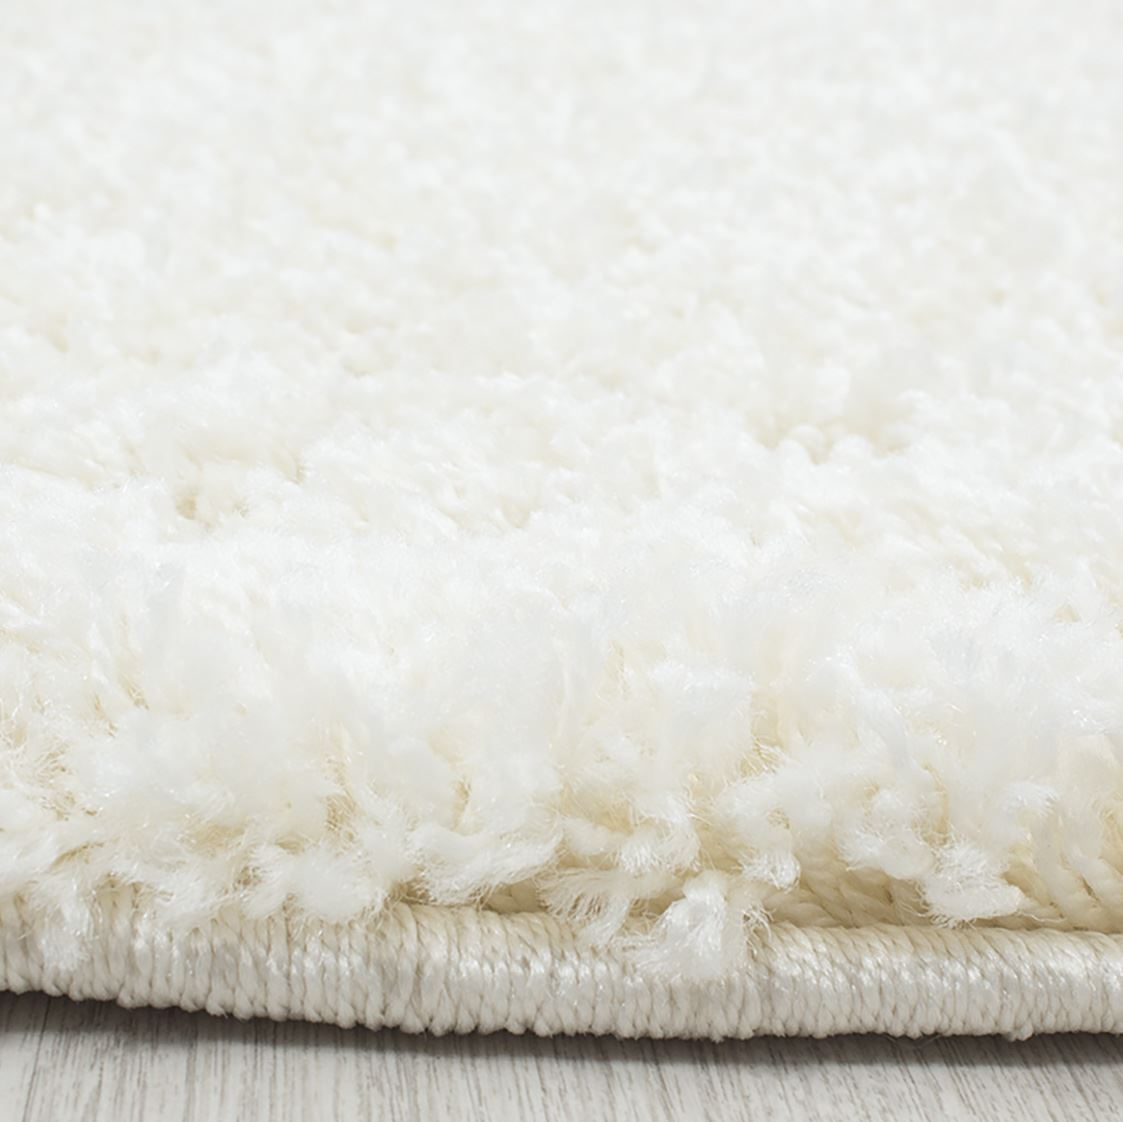 5cm thick soft touch shaggy shag pile rugs round runner for Thick area rugs sale